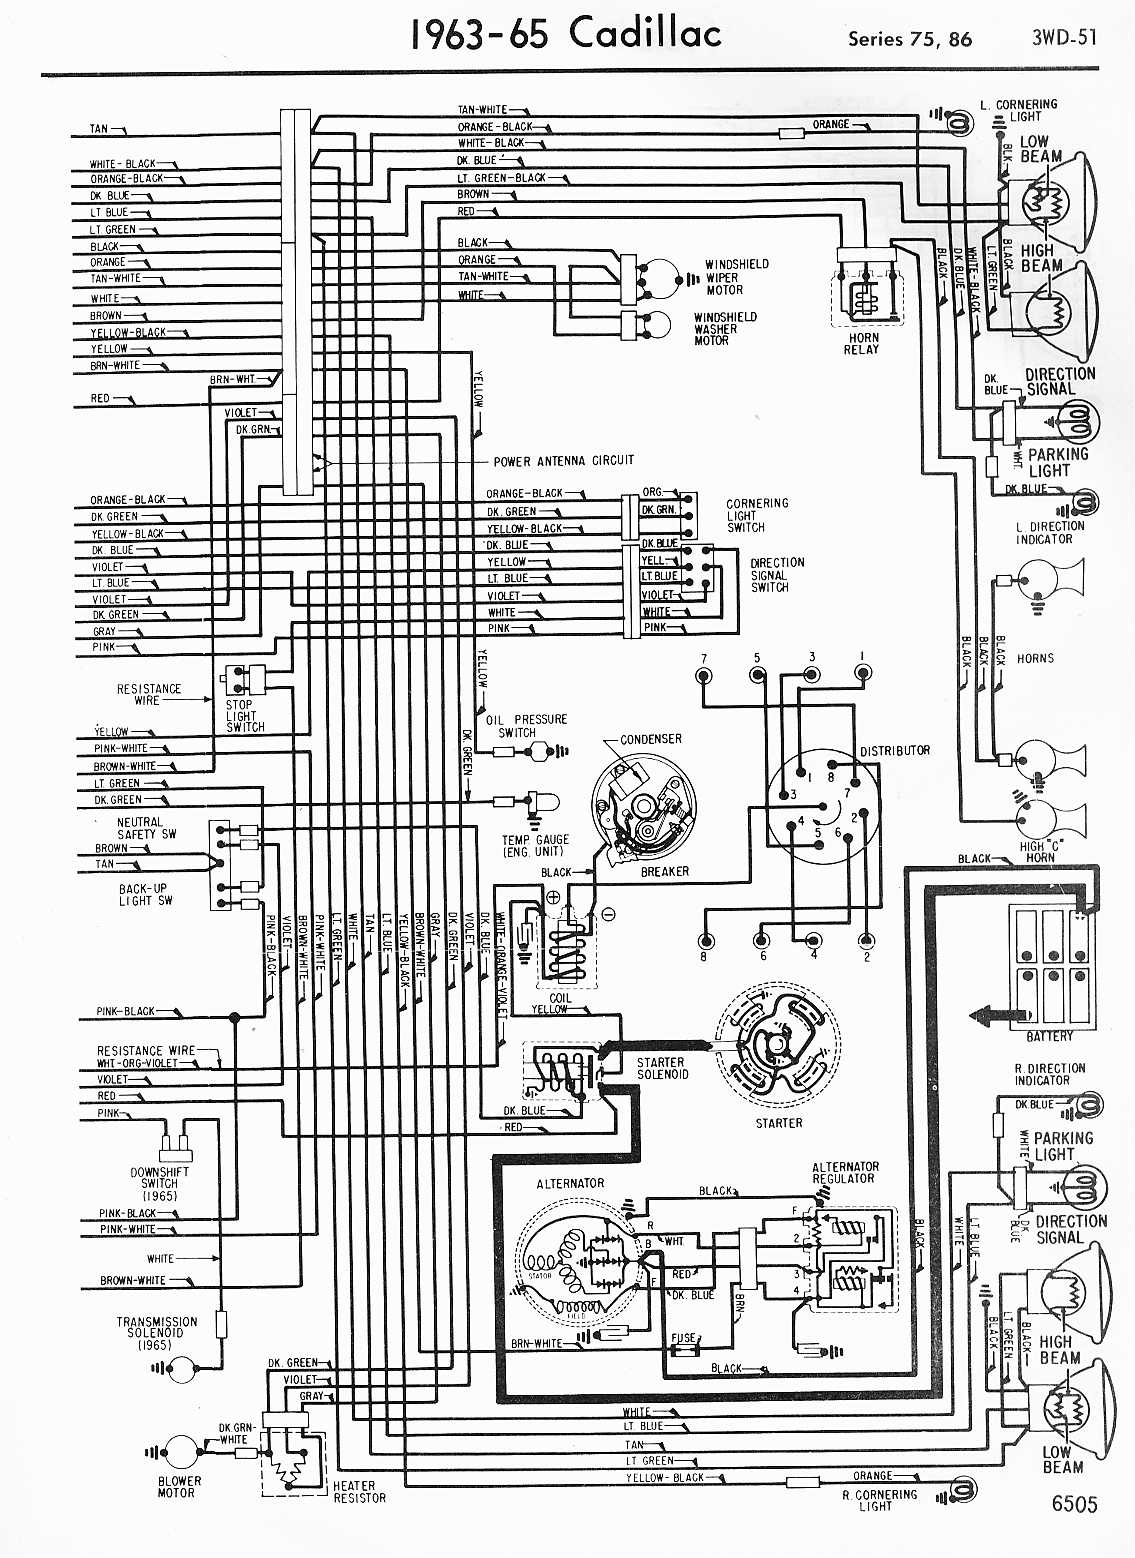 Cadillac Wiring Diagrams 1957 1965 Car Alternator Circuit Diagram Series 75 Right More Buick Ads